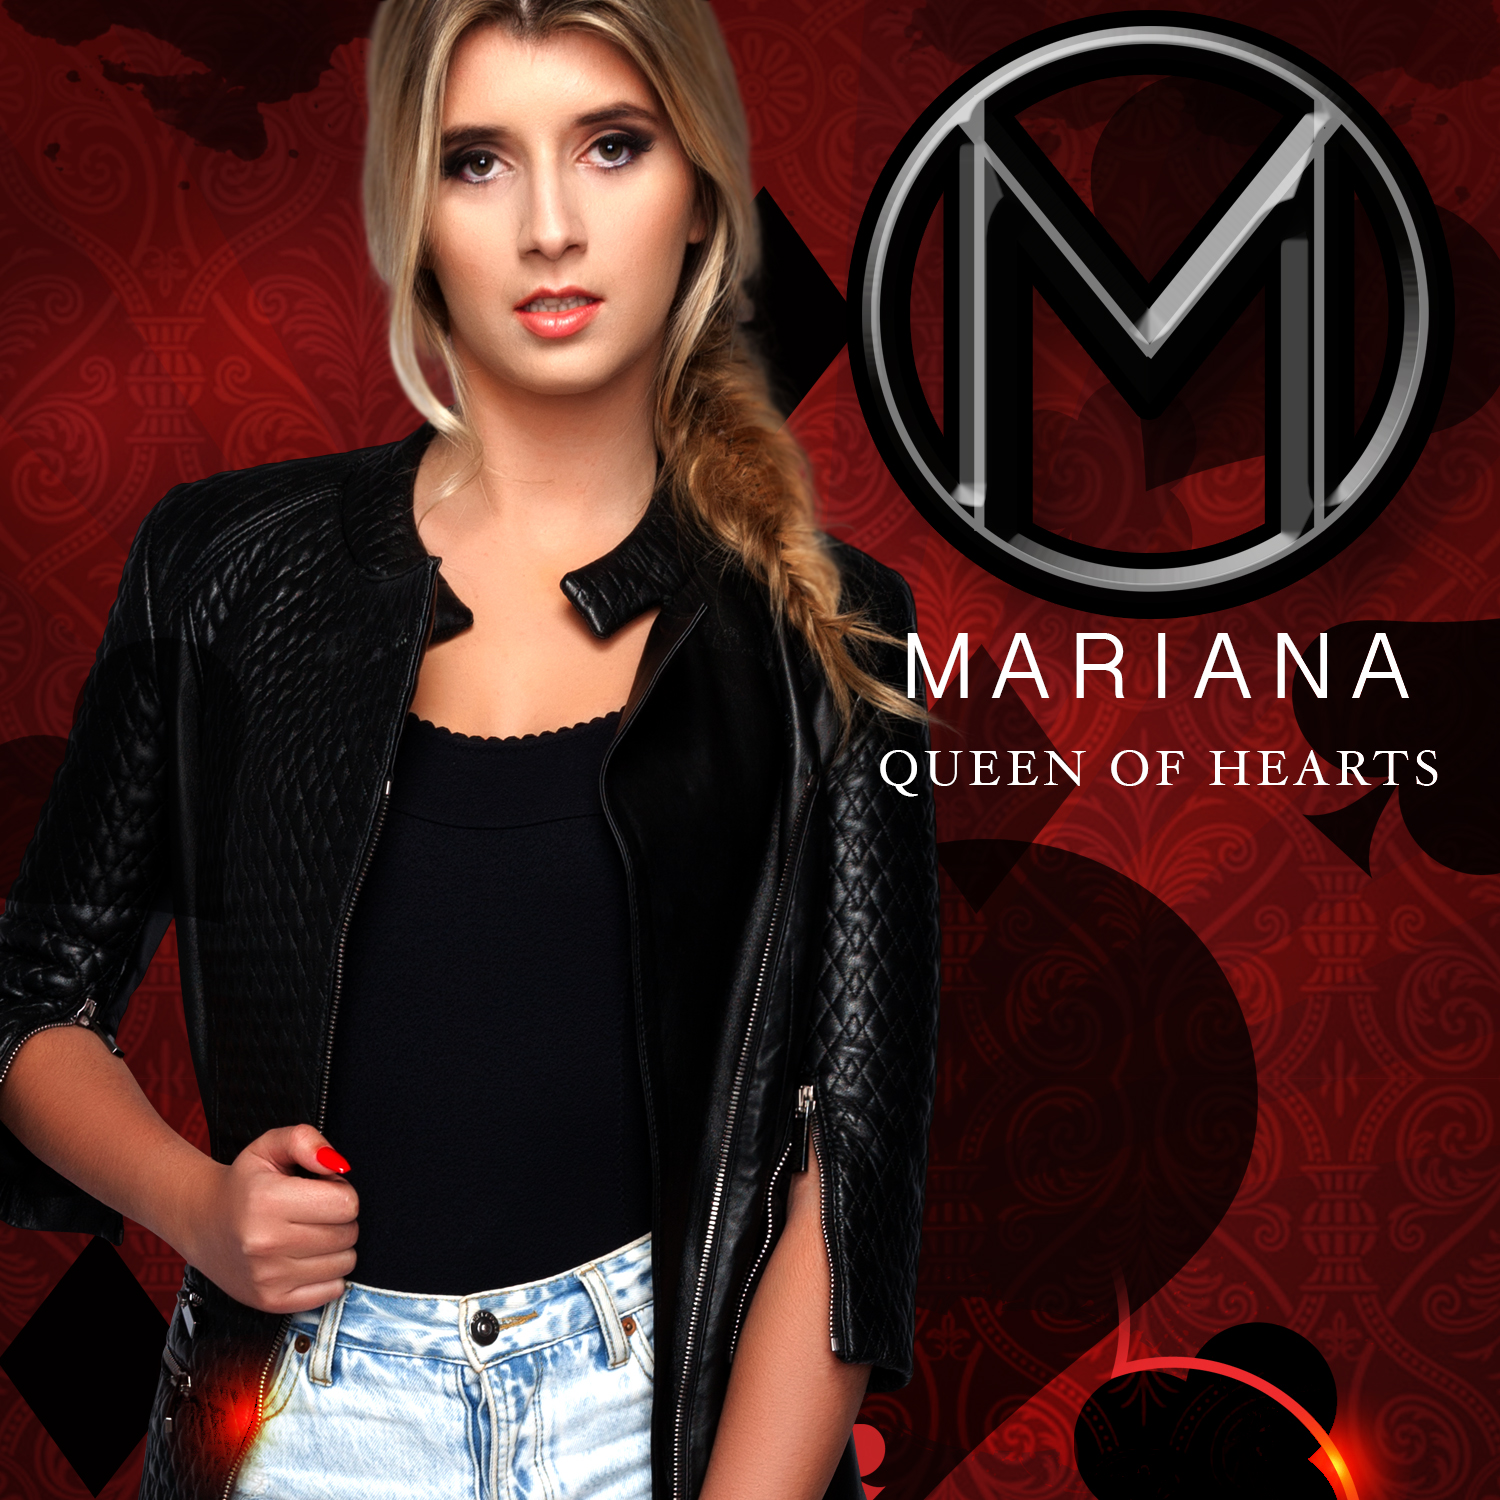 Mariana_Queen of Hearts